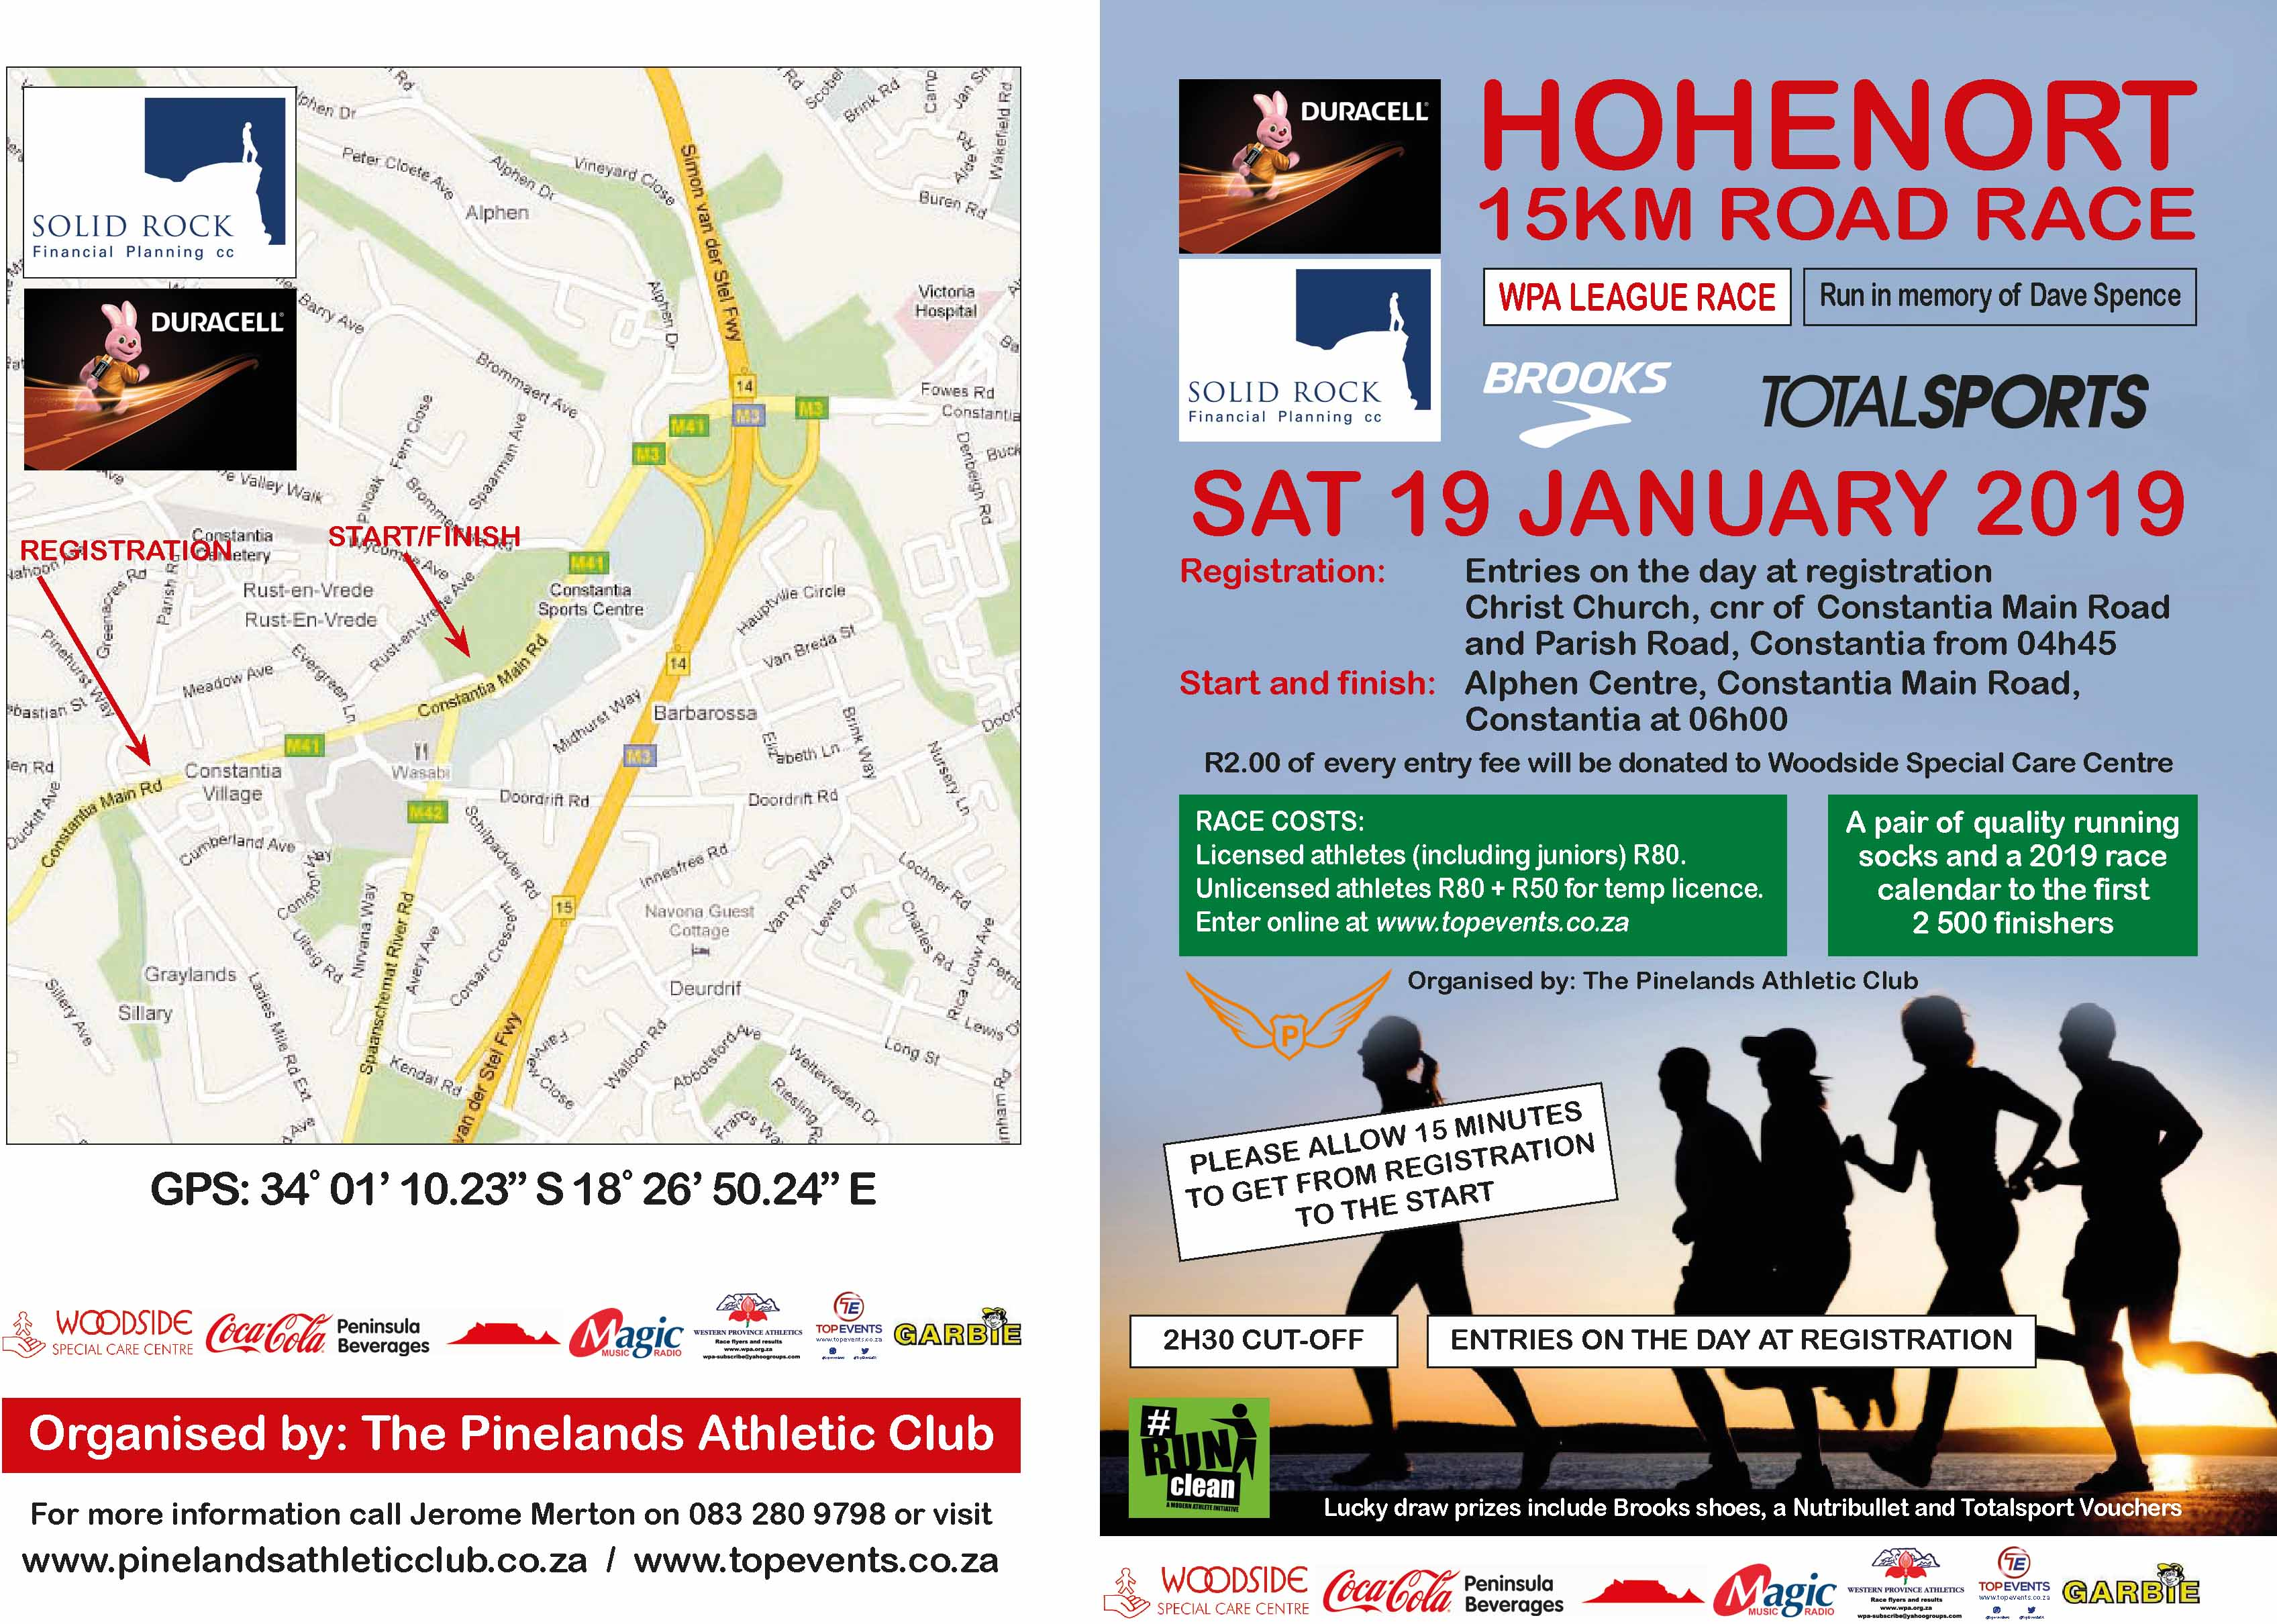 Hohenort 15km Road Race